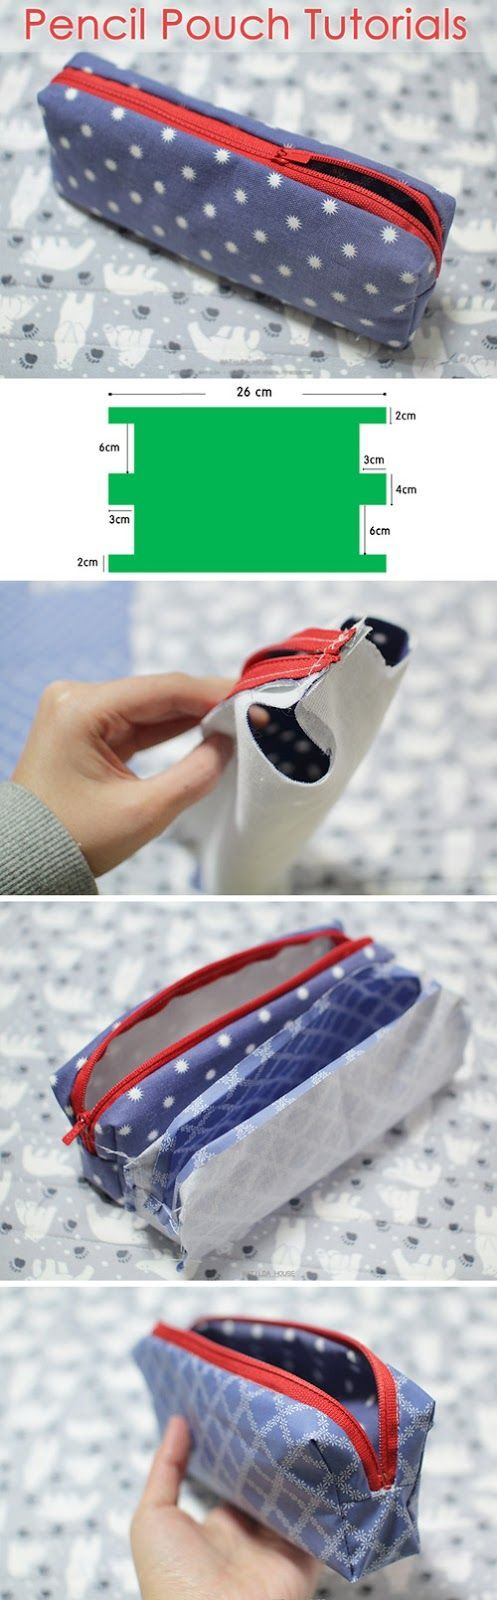 A massive compilation of the most creative and mind-boggling pencil case designs you will ever encounter. Looking for a great new pencil pouch? This is for you - [http://theendearingdesigner.com/10-unique-creative-pencil-cases-designs-will-blow-mind/]